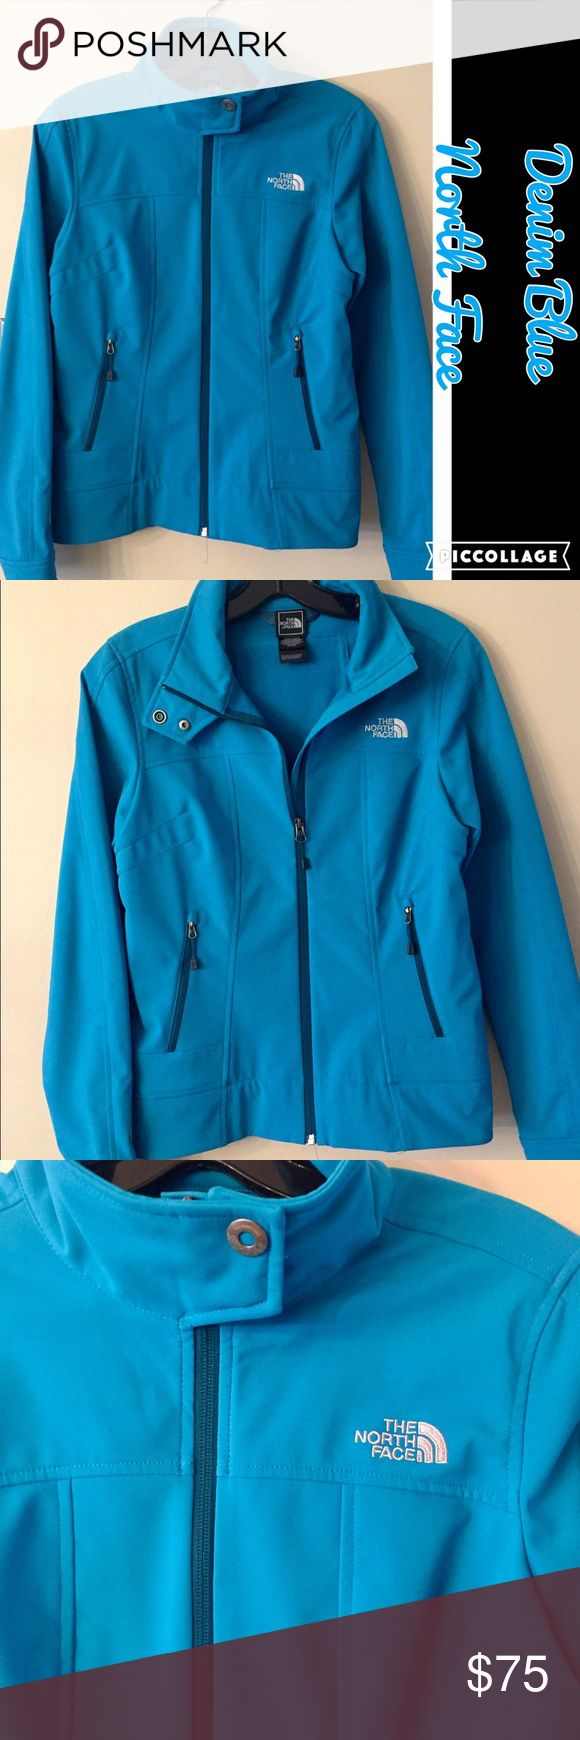 ❤️Denim Blue North Face Jacket Denim Blue North Face Jacket. Jacket has zip up front w/snap collar. Has two zip pockets. Wear w/collar open or closed. In excellent condition. Jacket is a Small/P North Face Jackets & Coats